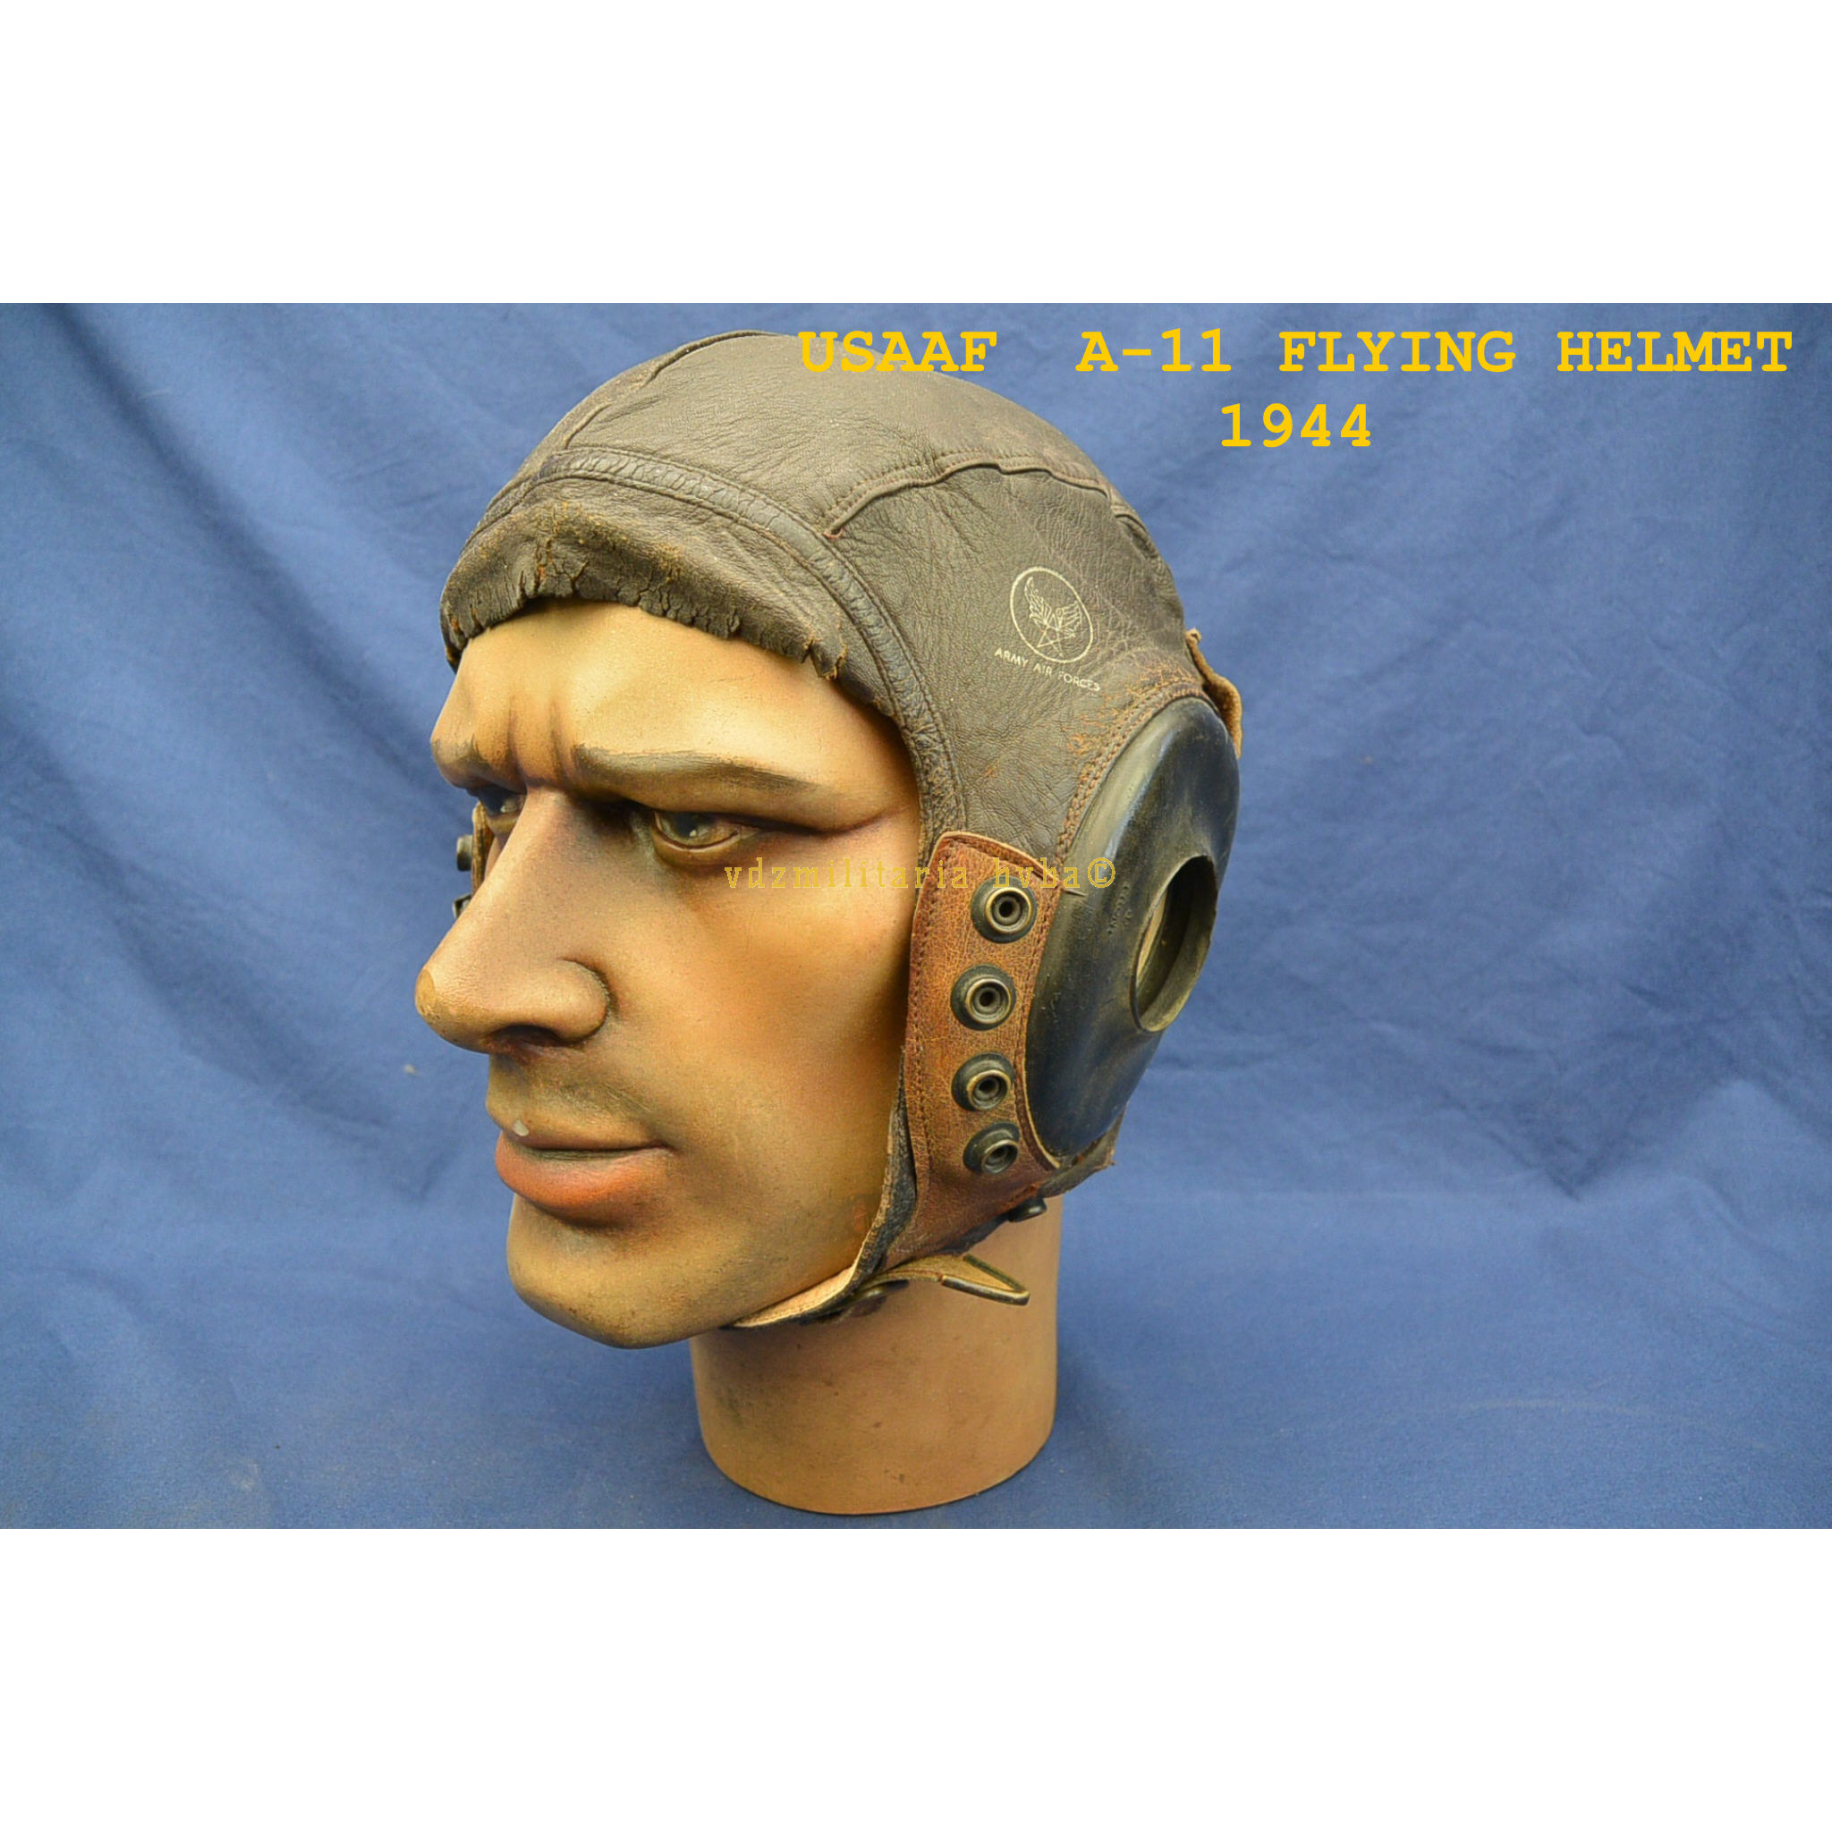 e62628df266 USAAF TYPE A-11 FLYING HELMET DATED -1944 - VDZ-Militaria b.v.b.a.